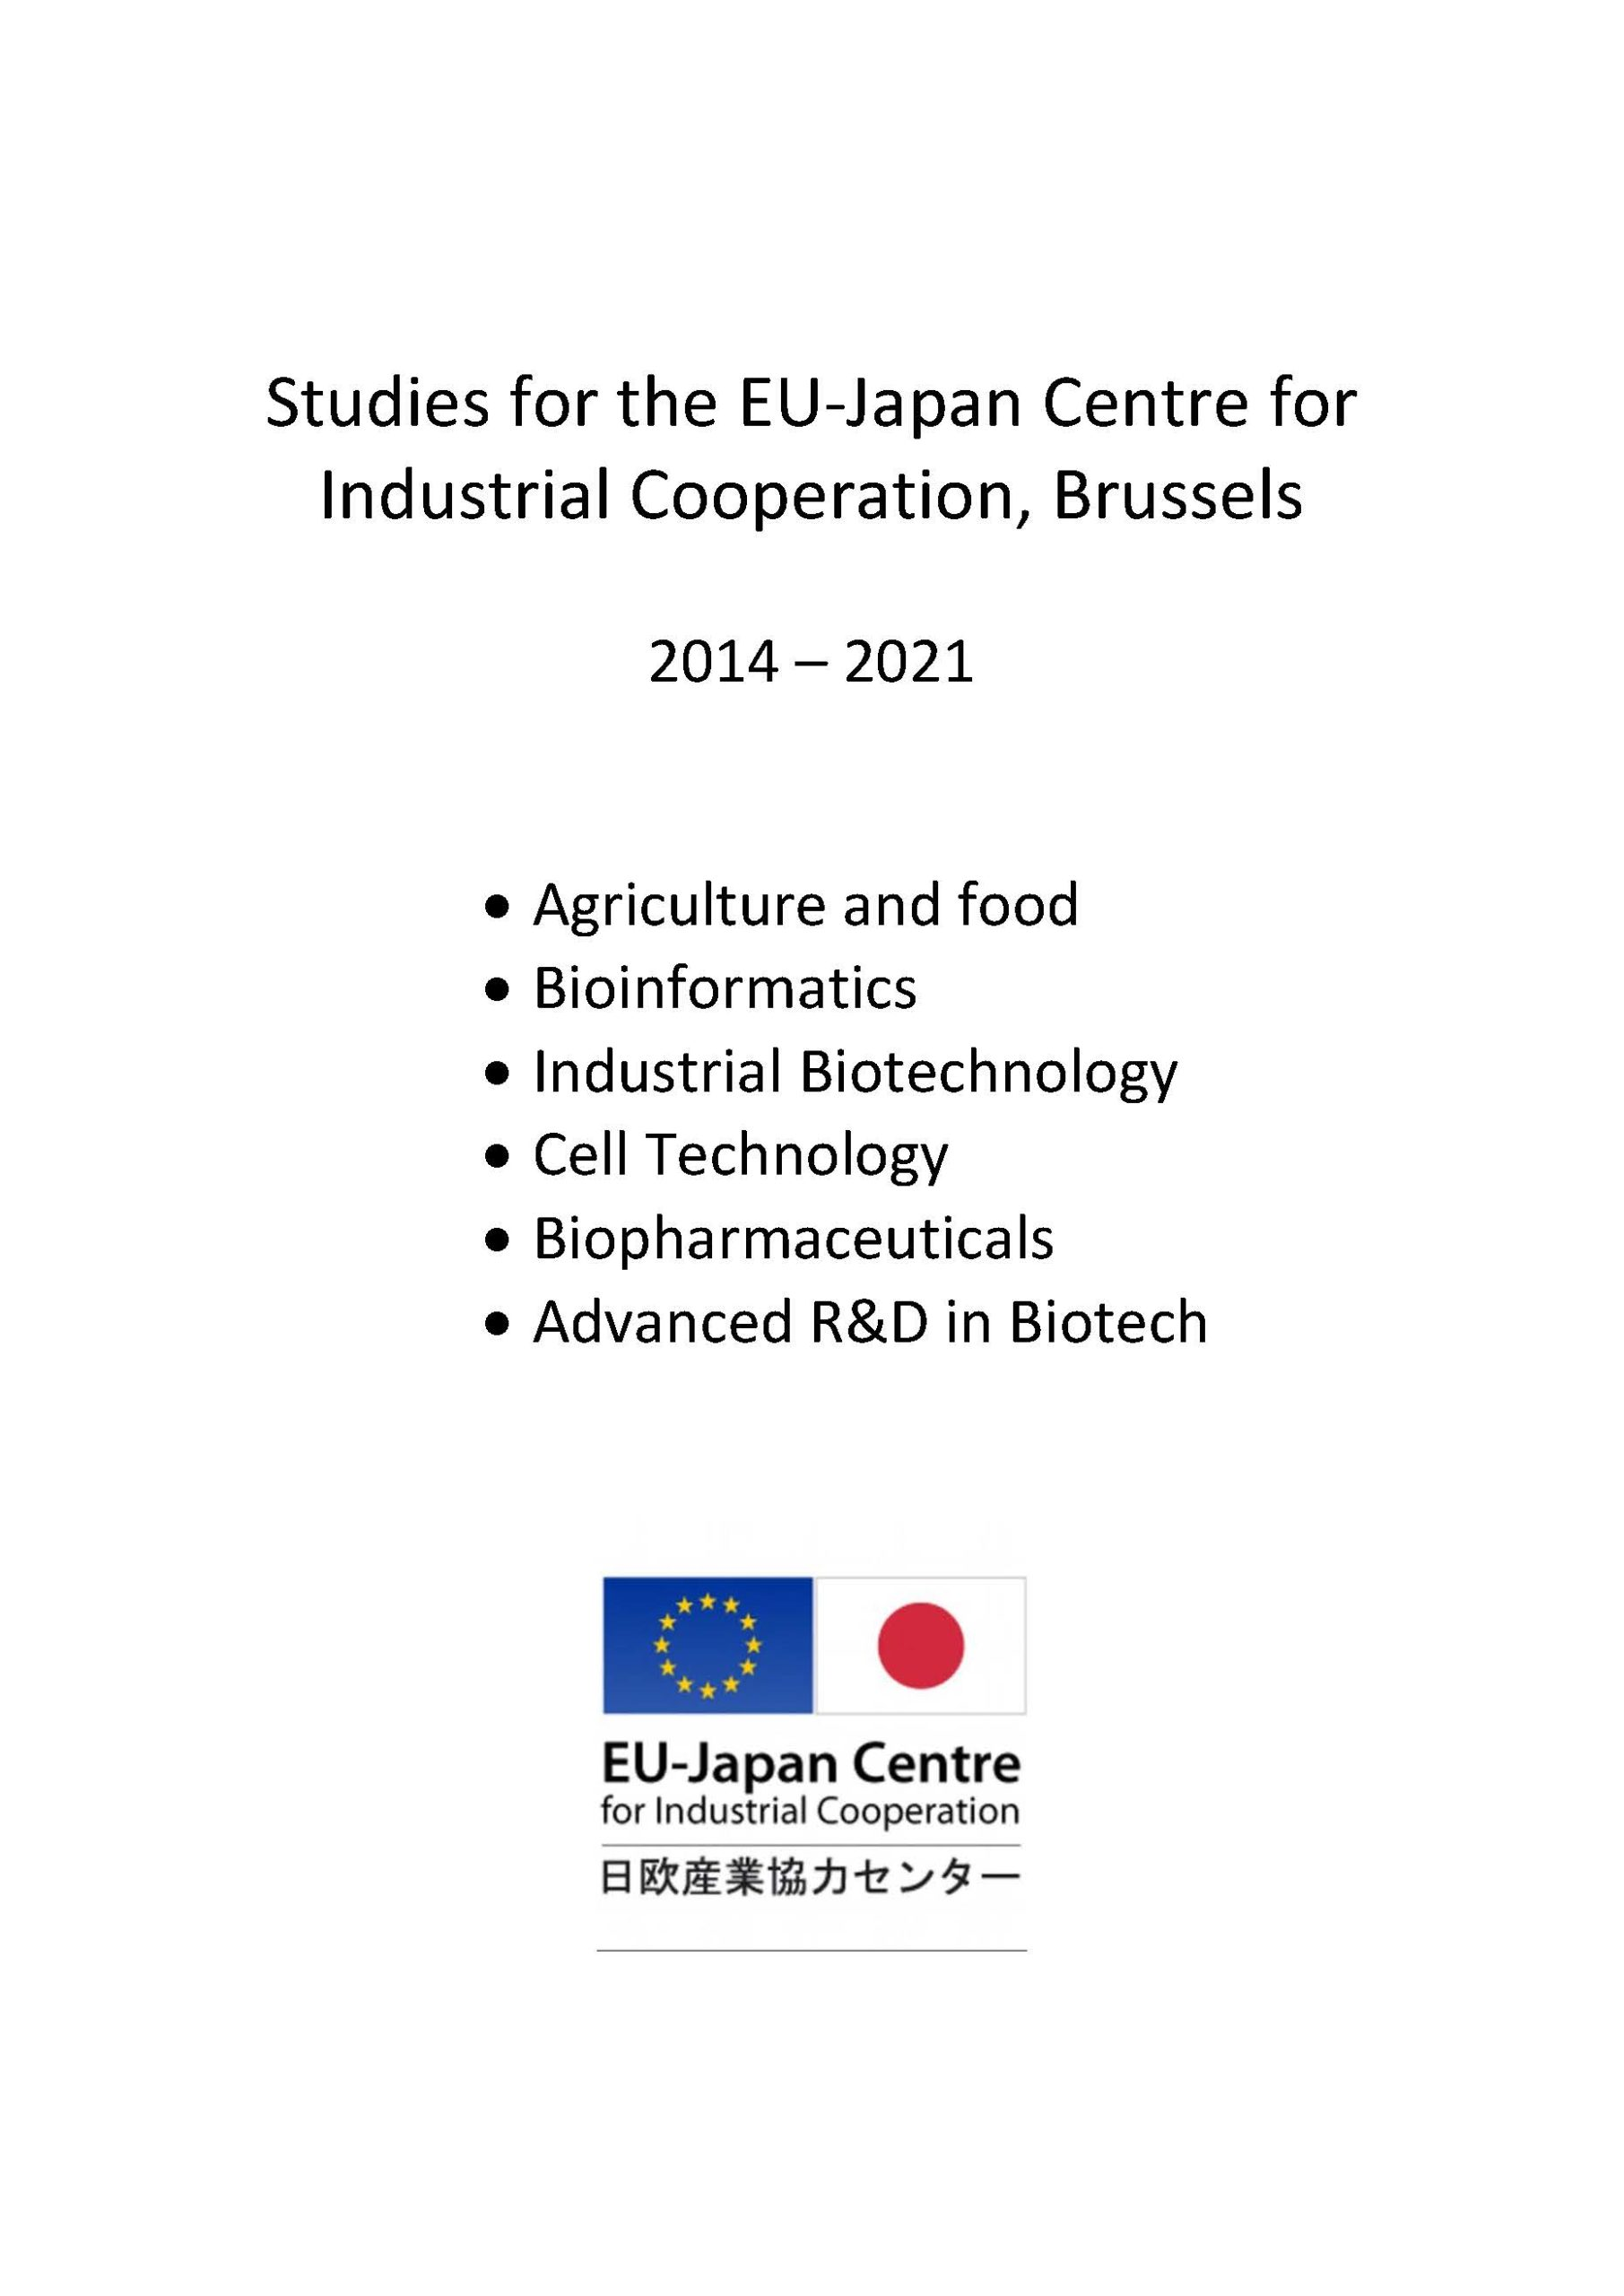 30 – 60 pages reports for the EU-Japan Centre for Industrial Cooperation in Brussels/Tokyo in English. Copies can be obtained free of charge through https://www.eu-japan.eu after registration.